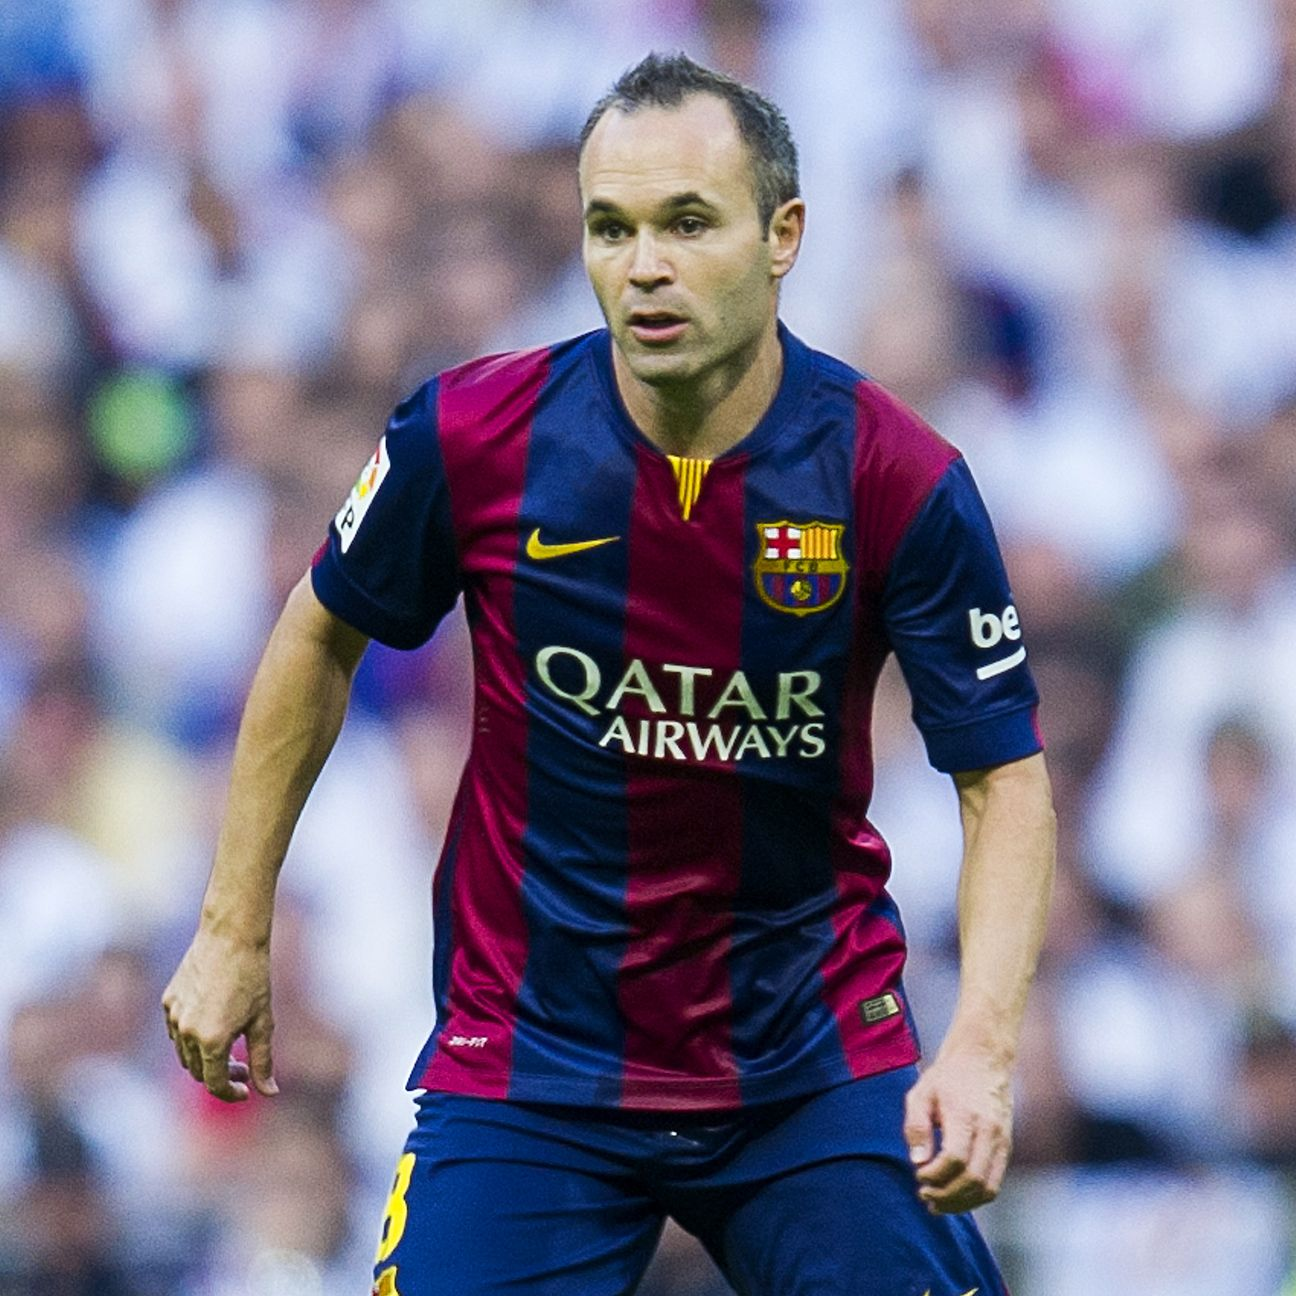 A return of Andres Iniesta could be just the thing to get the Barcelona midfield clicking again.